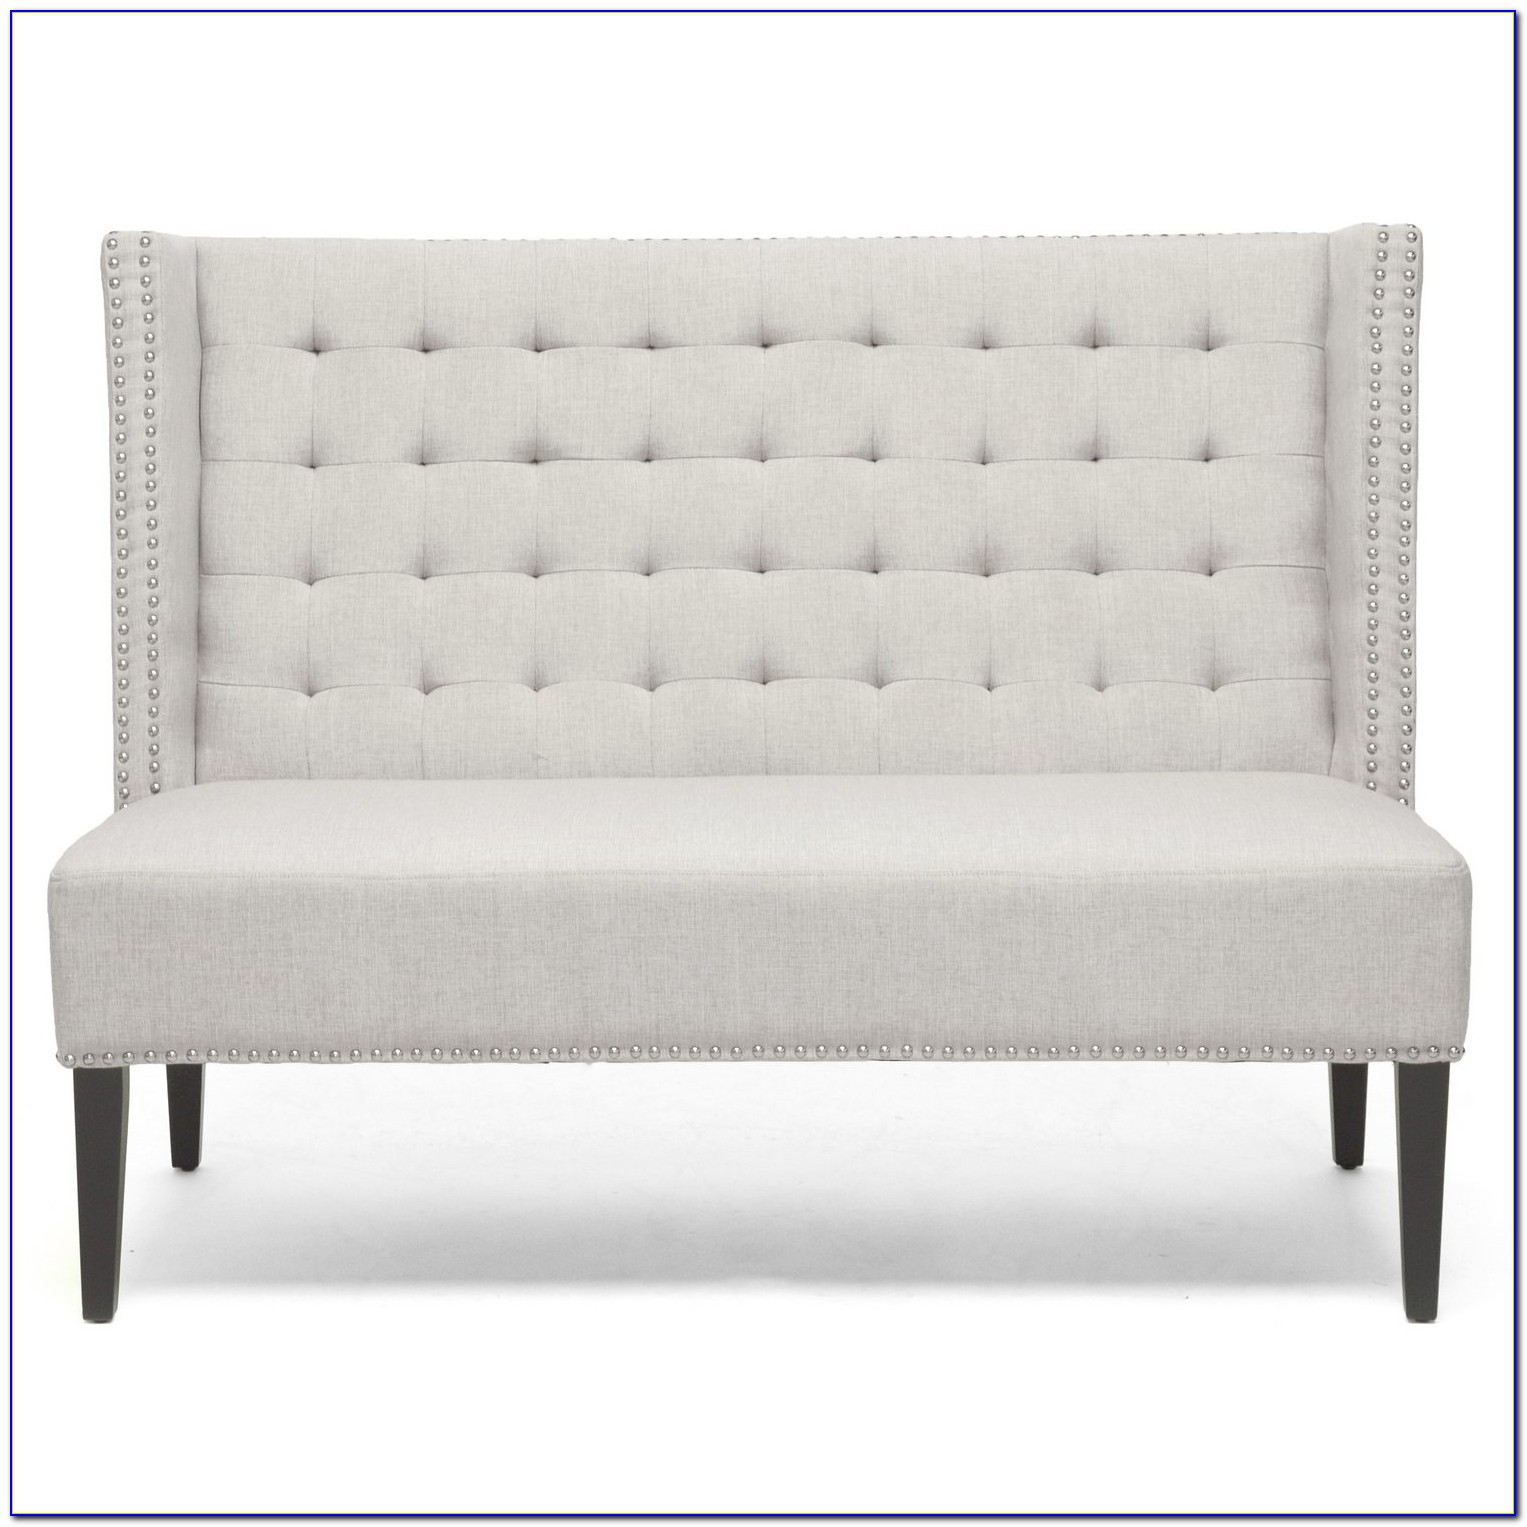 Dining Bench With Back Upholstered Australia